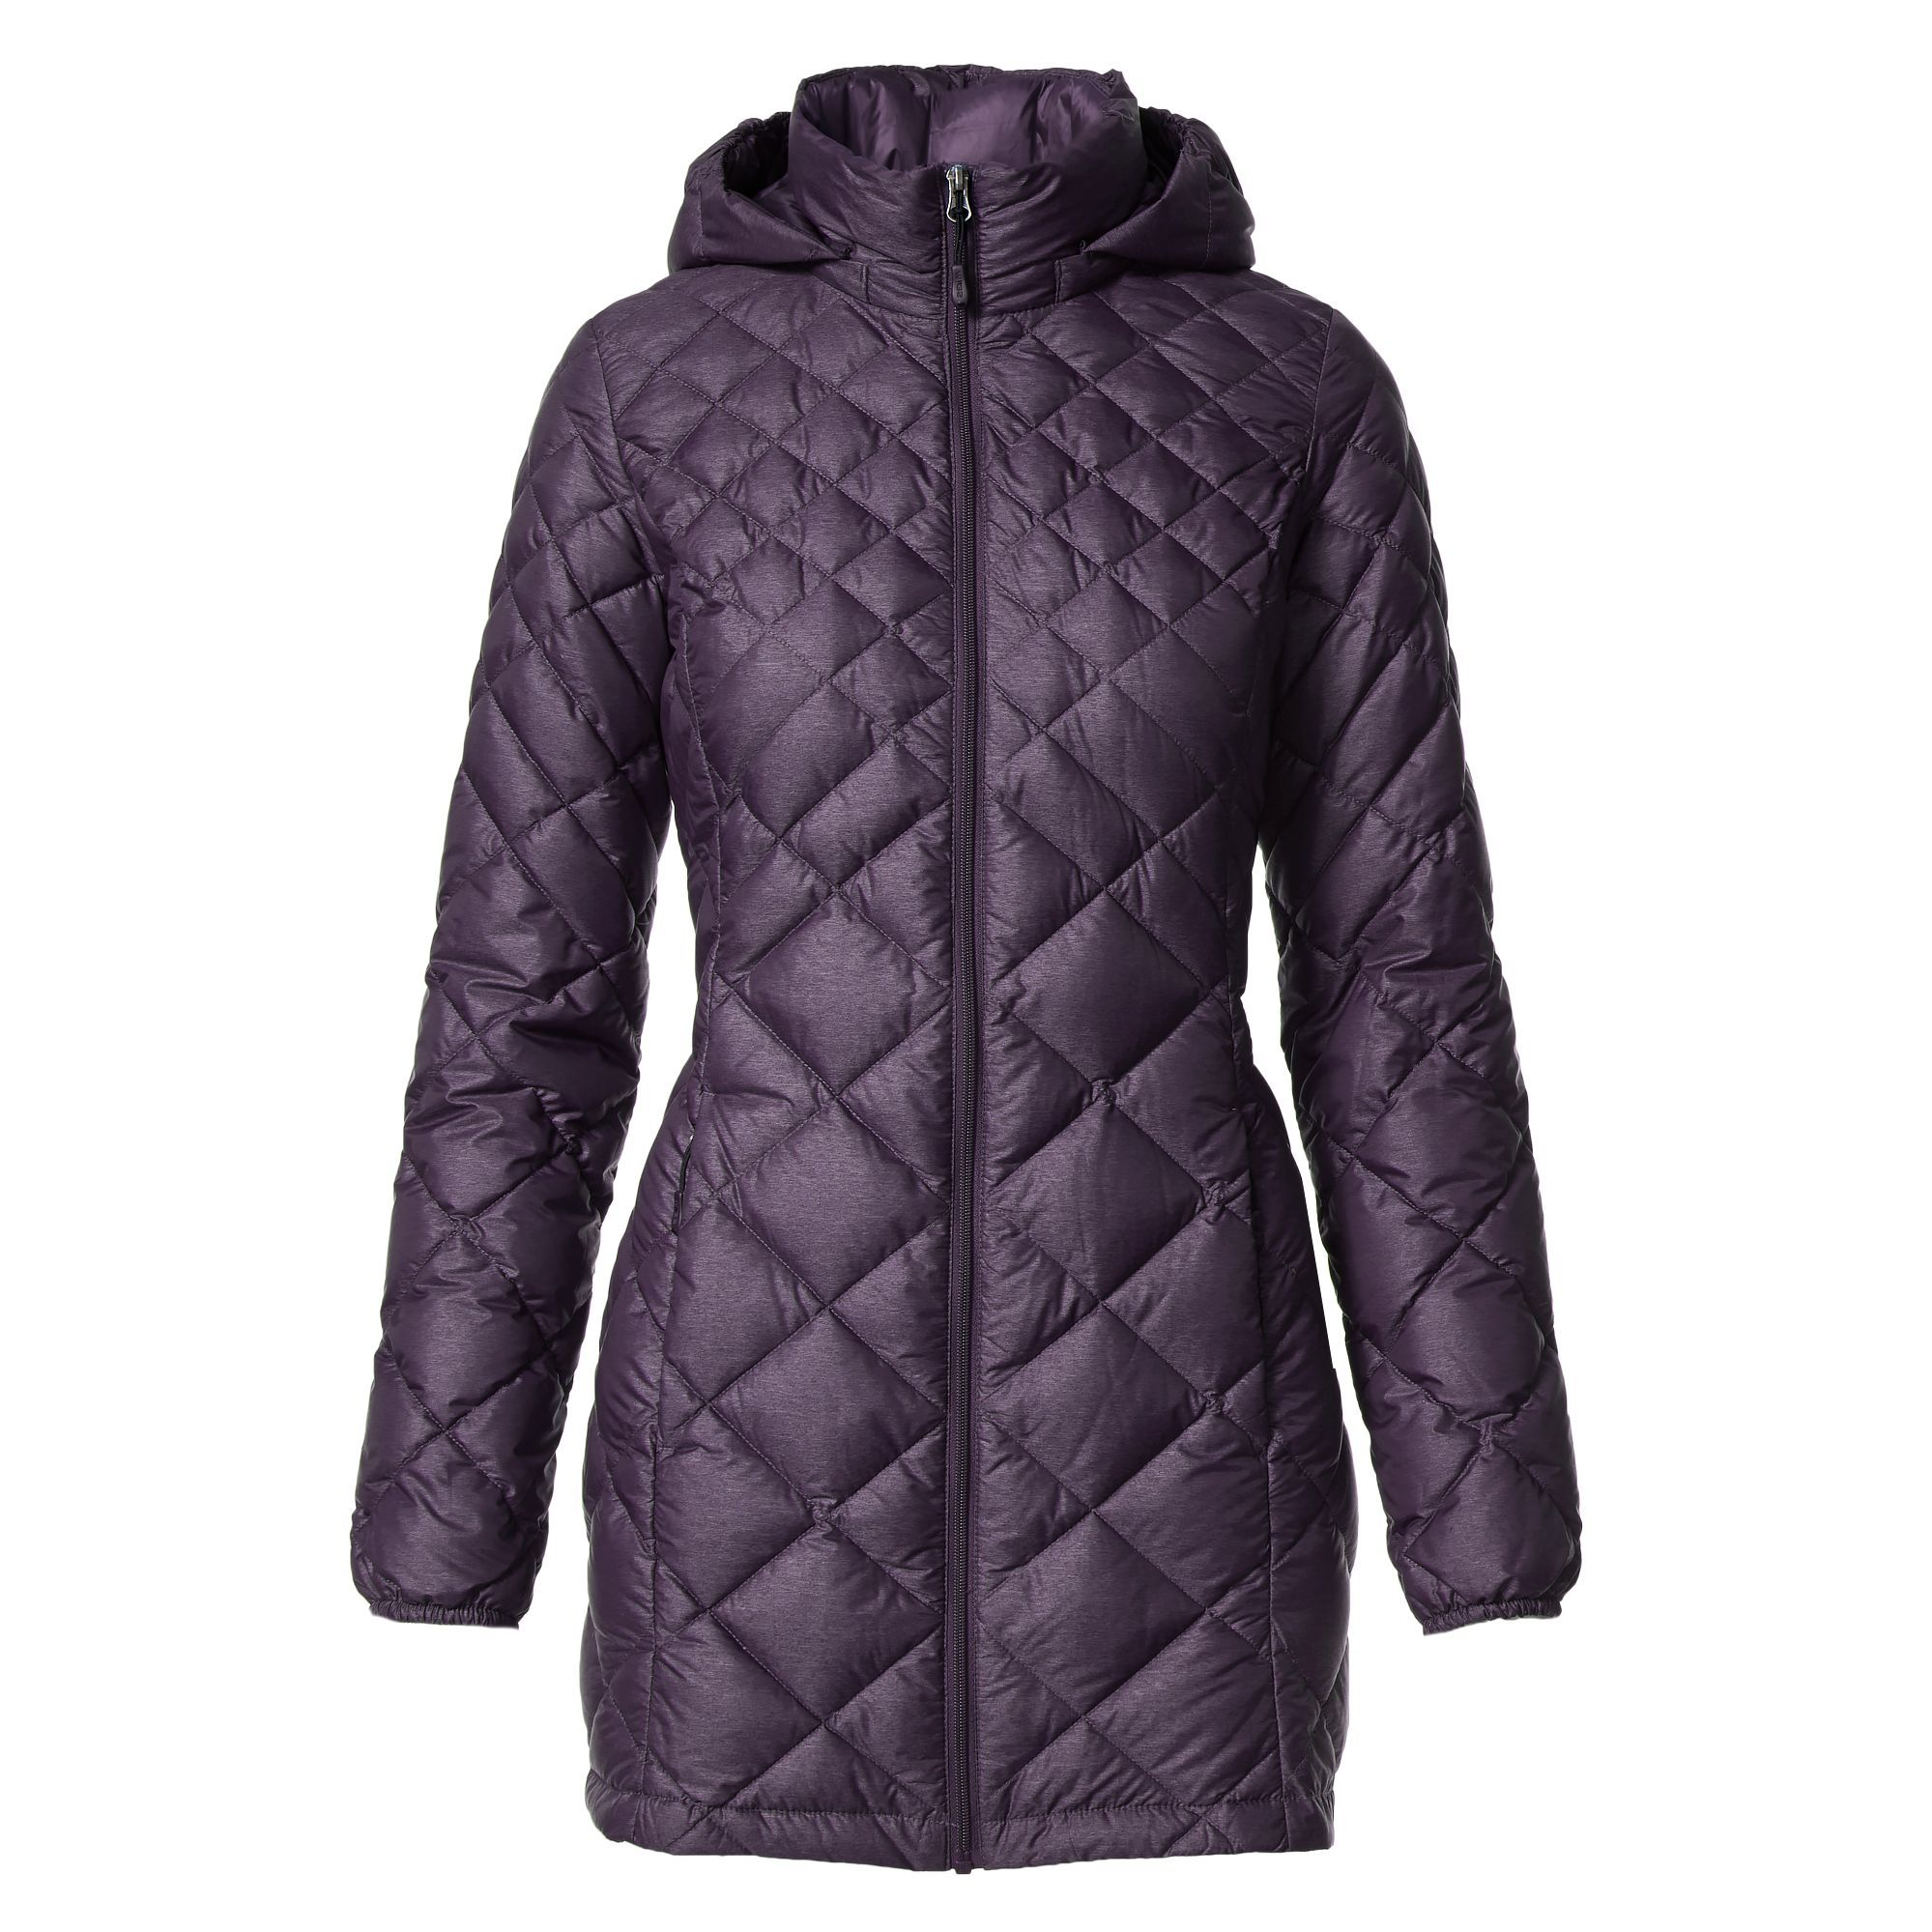 puffer quilt at trim cole coat sold hooded previously macy gallery fauxfurtrim clothing reaction quilted coats in faux lyst s kenneth product fur concord women